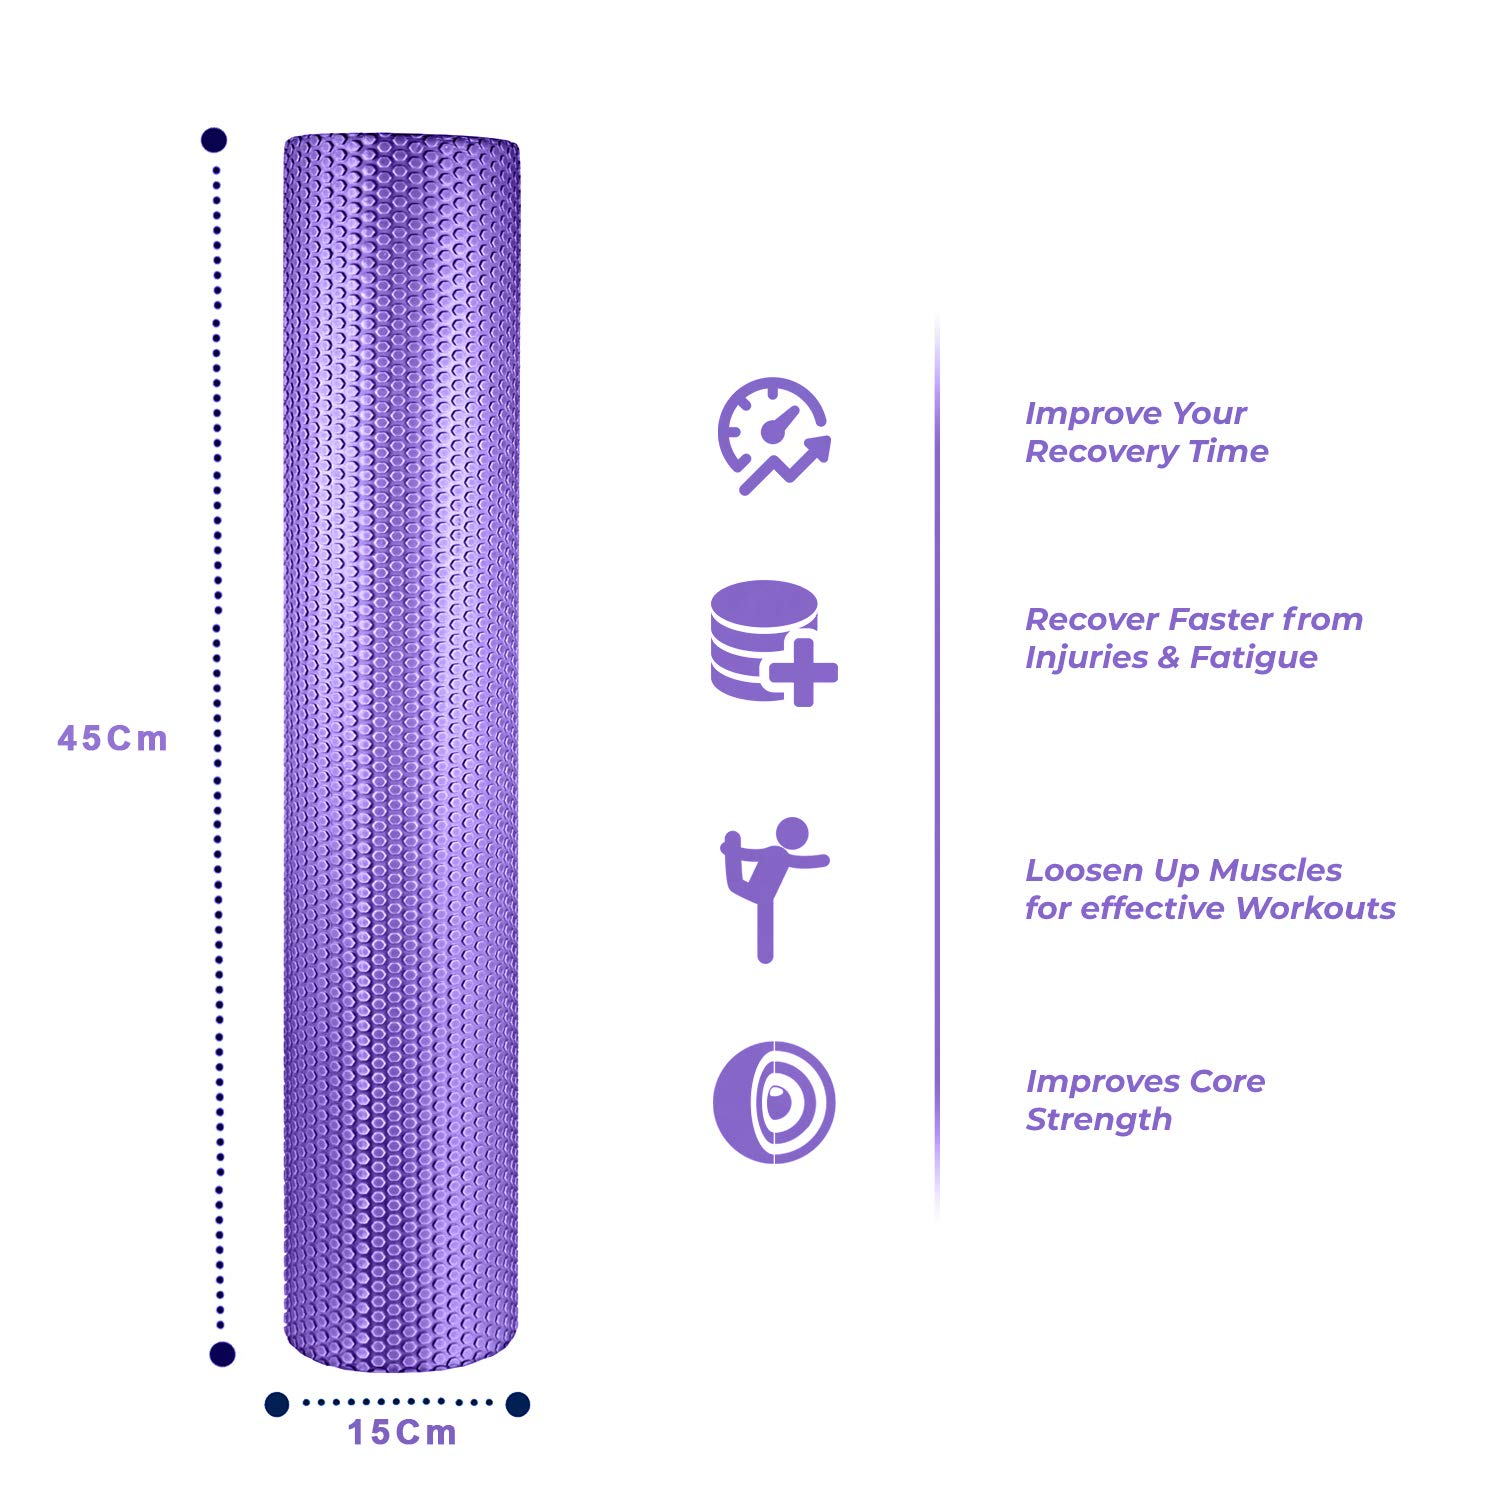 spinway Yoga Foam Roller Speckled Foam Rollers for Muscles Extra Firm High Density for Physical Therapy Exercise Deep Tissue Muscle Massage (Puple)